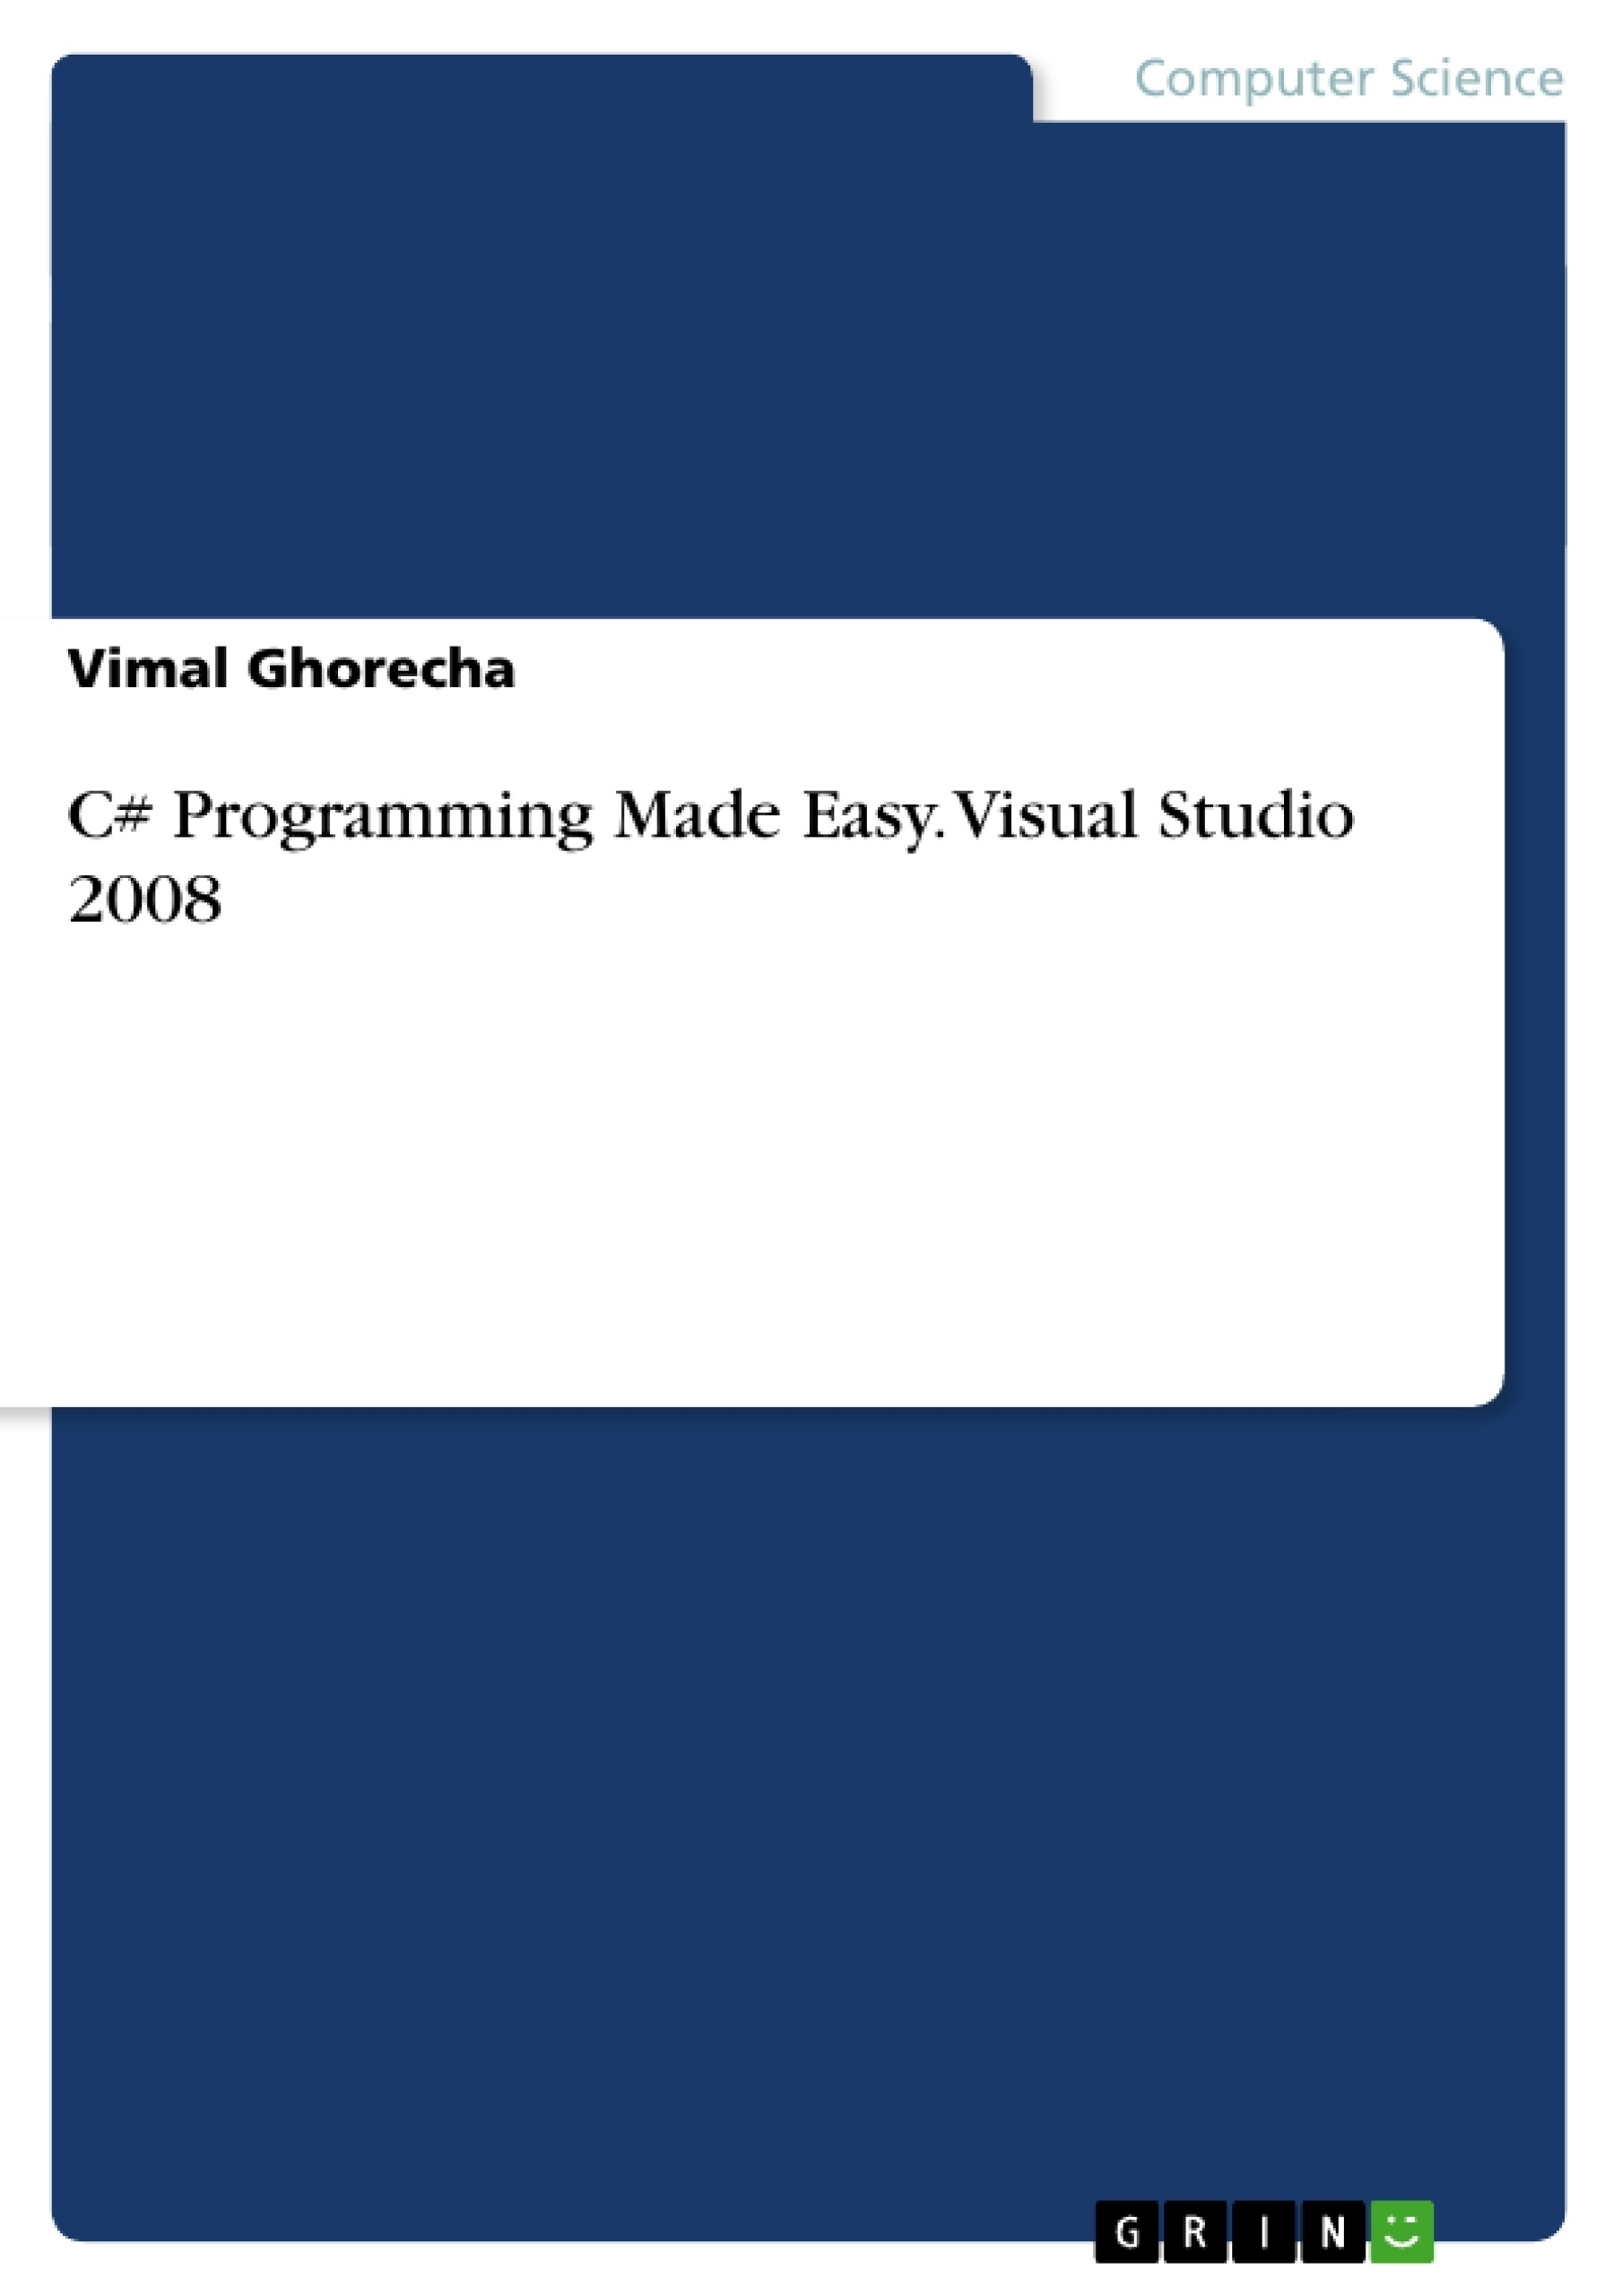 Title: C# Programming Made Easy. Visual Studio 2008